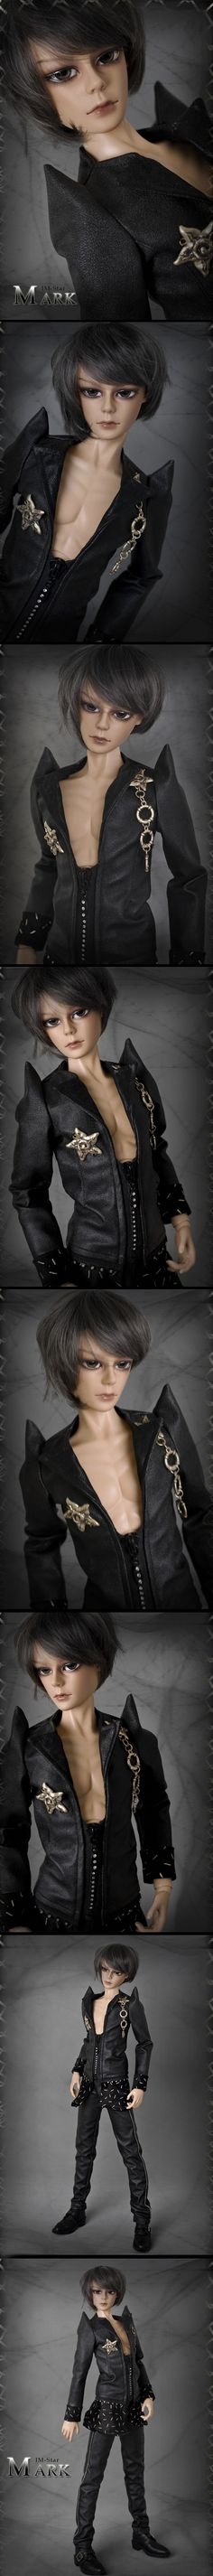 Mark, 64cm Impldoll Boy - BJD Dolls, Accessories - Alice's Collections